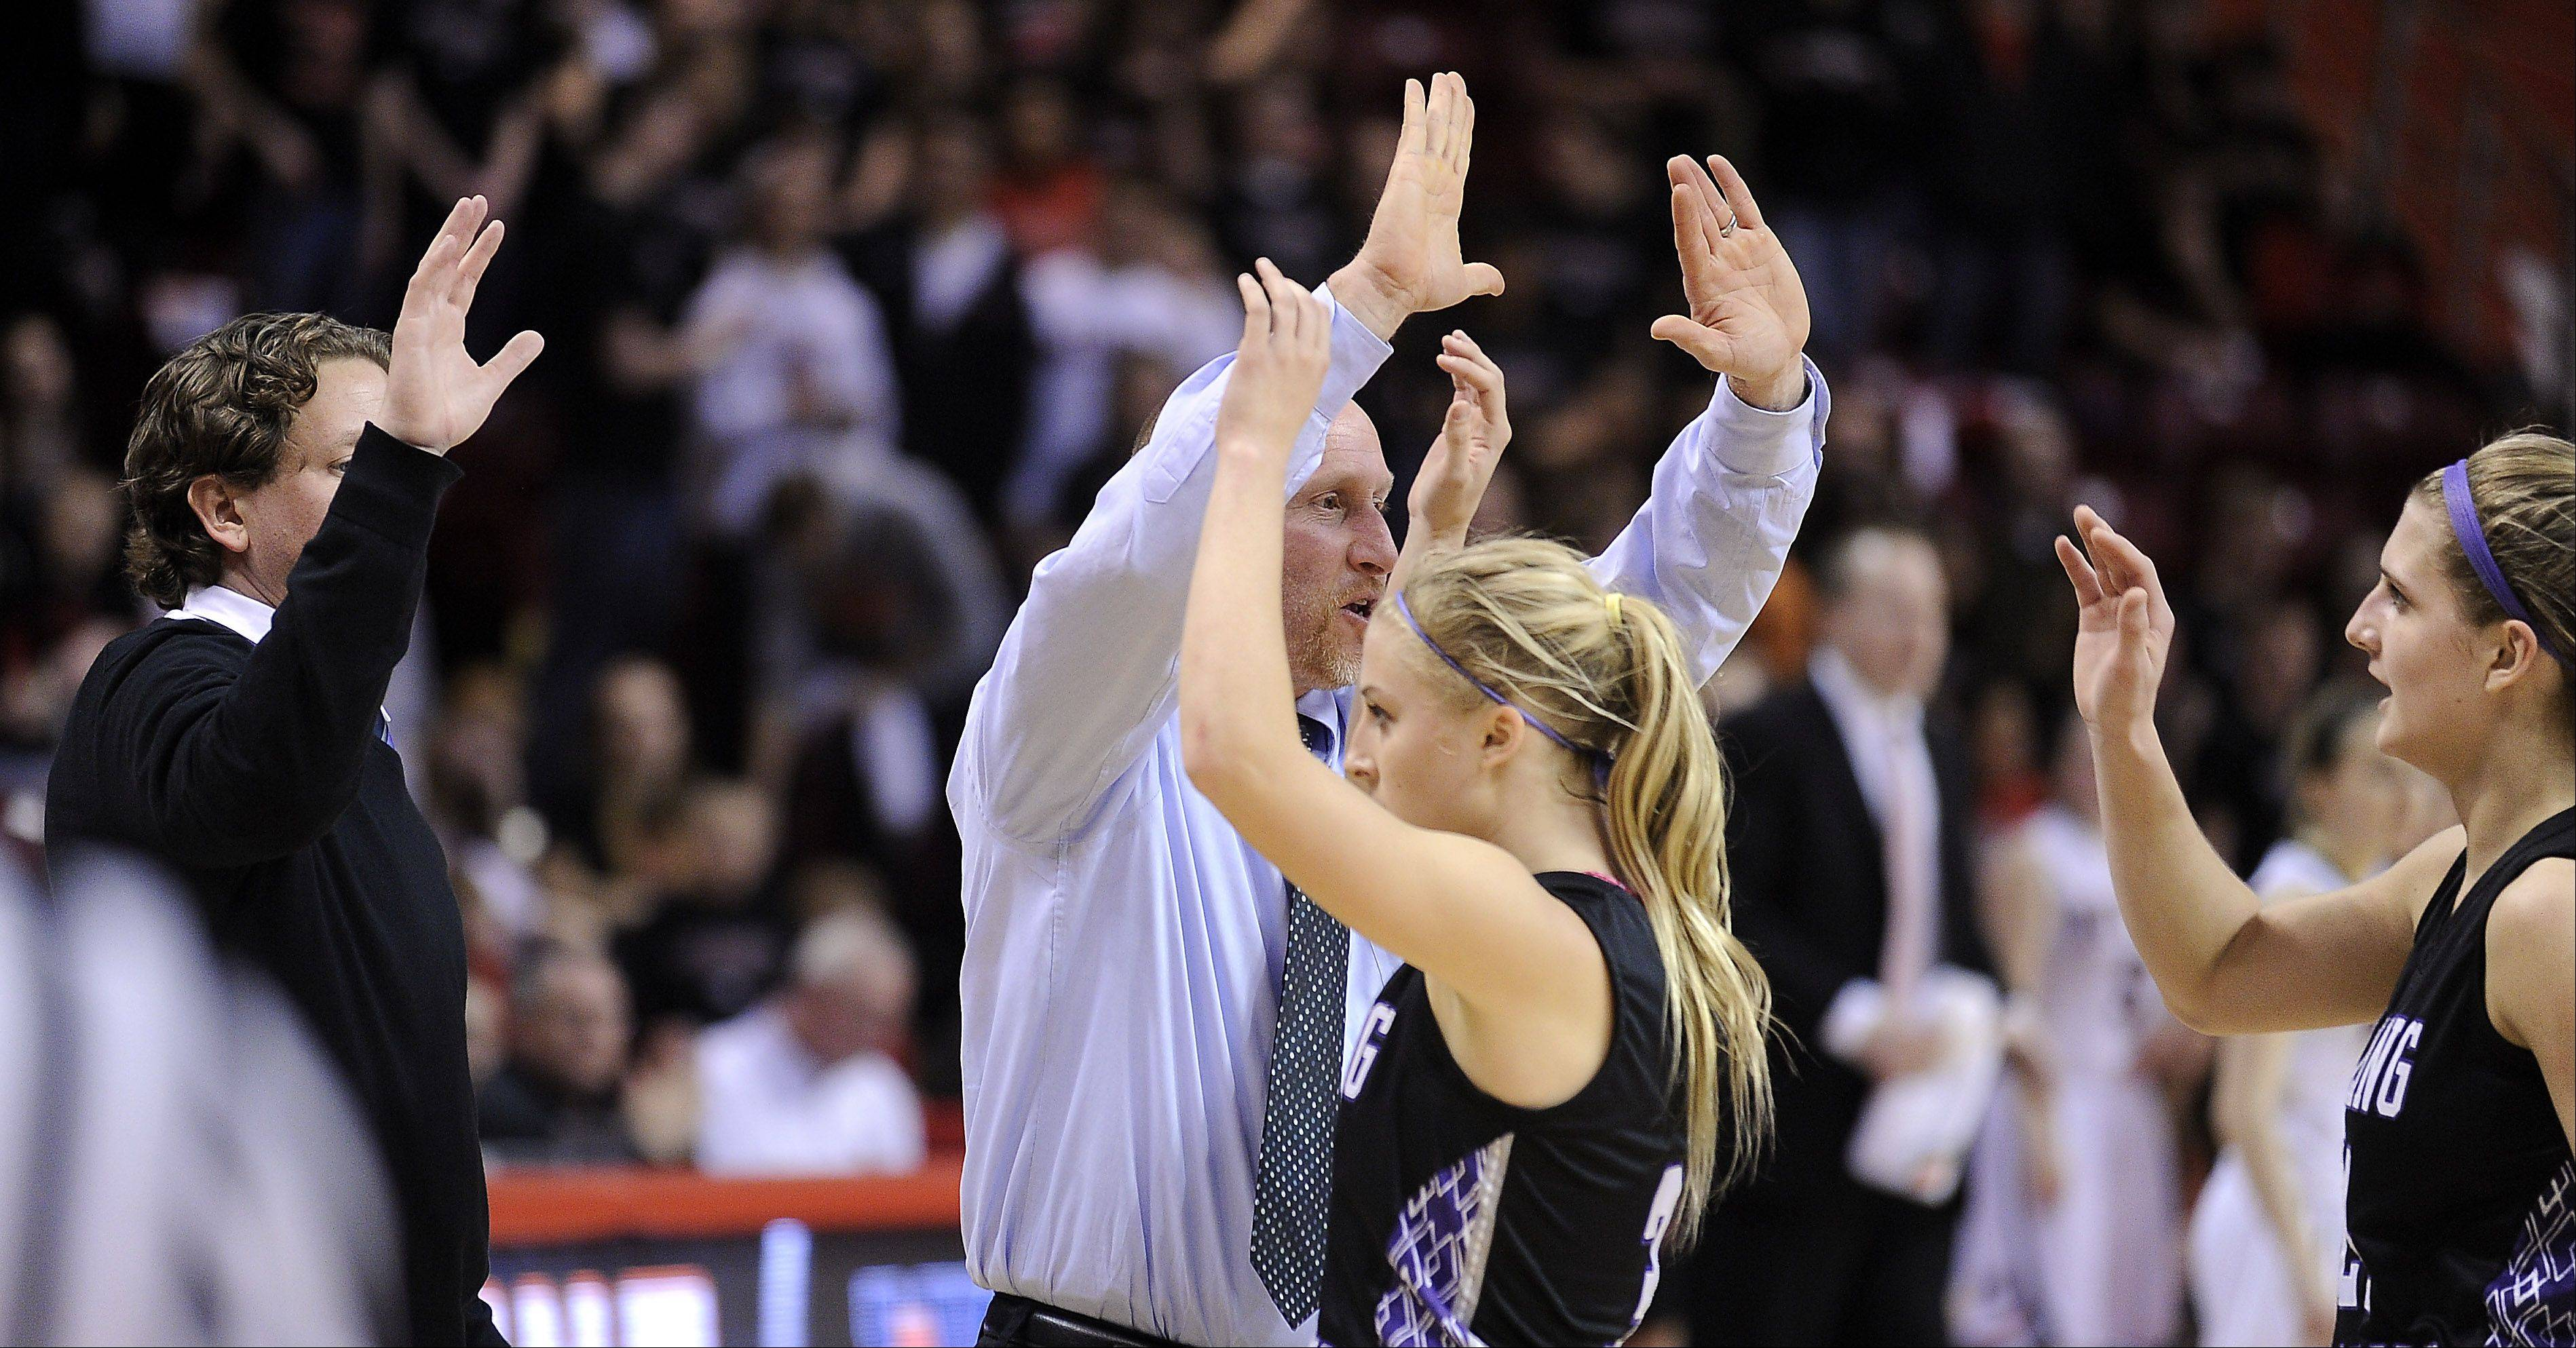 Rolling Meadows' coaches hi-five the starters as they head to the bench in the closing seconds of the game.